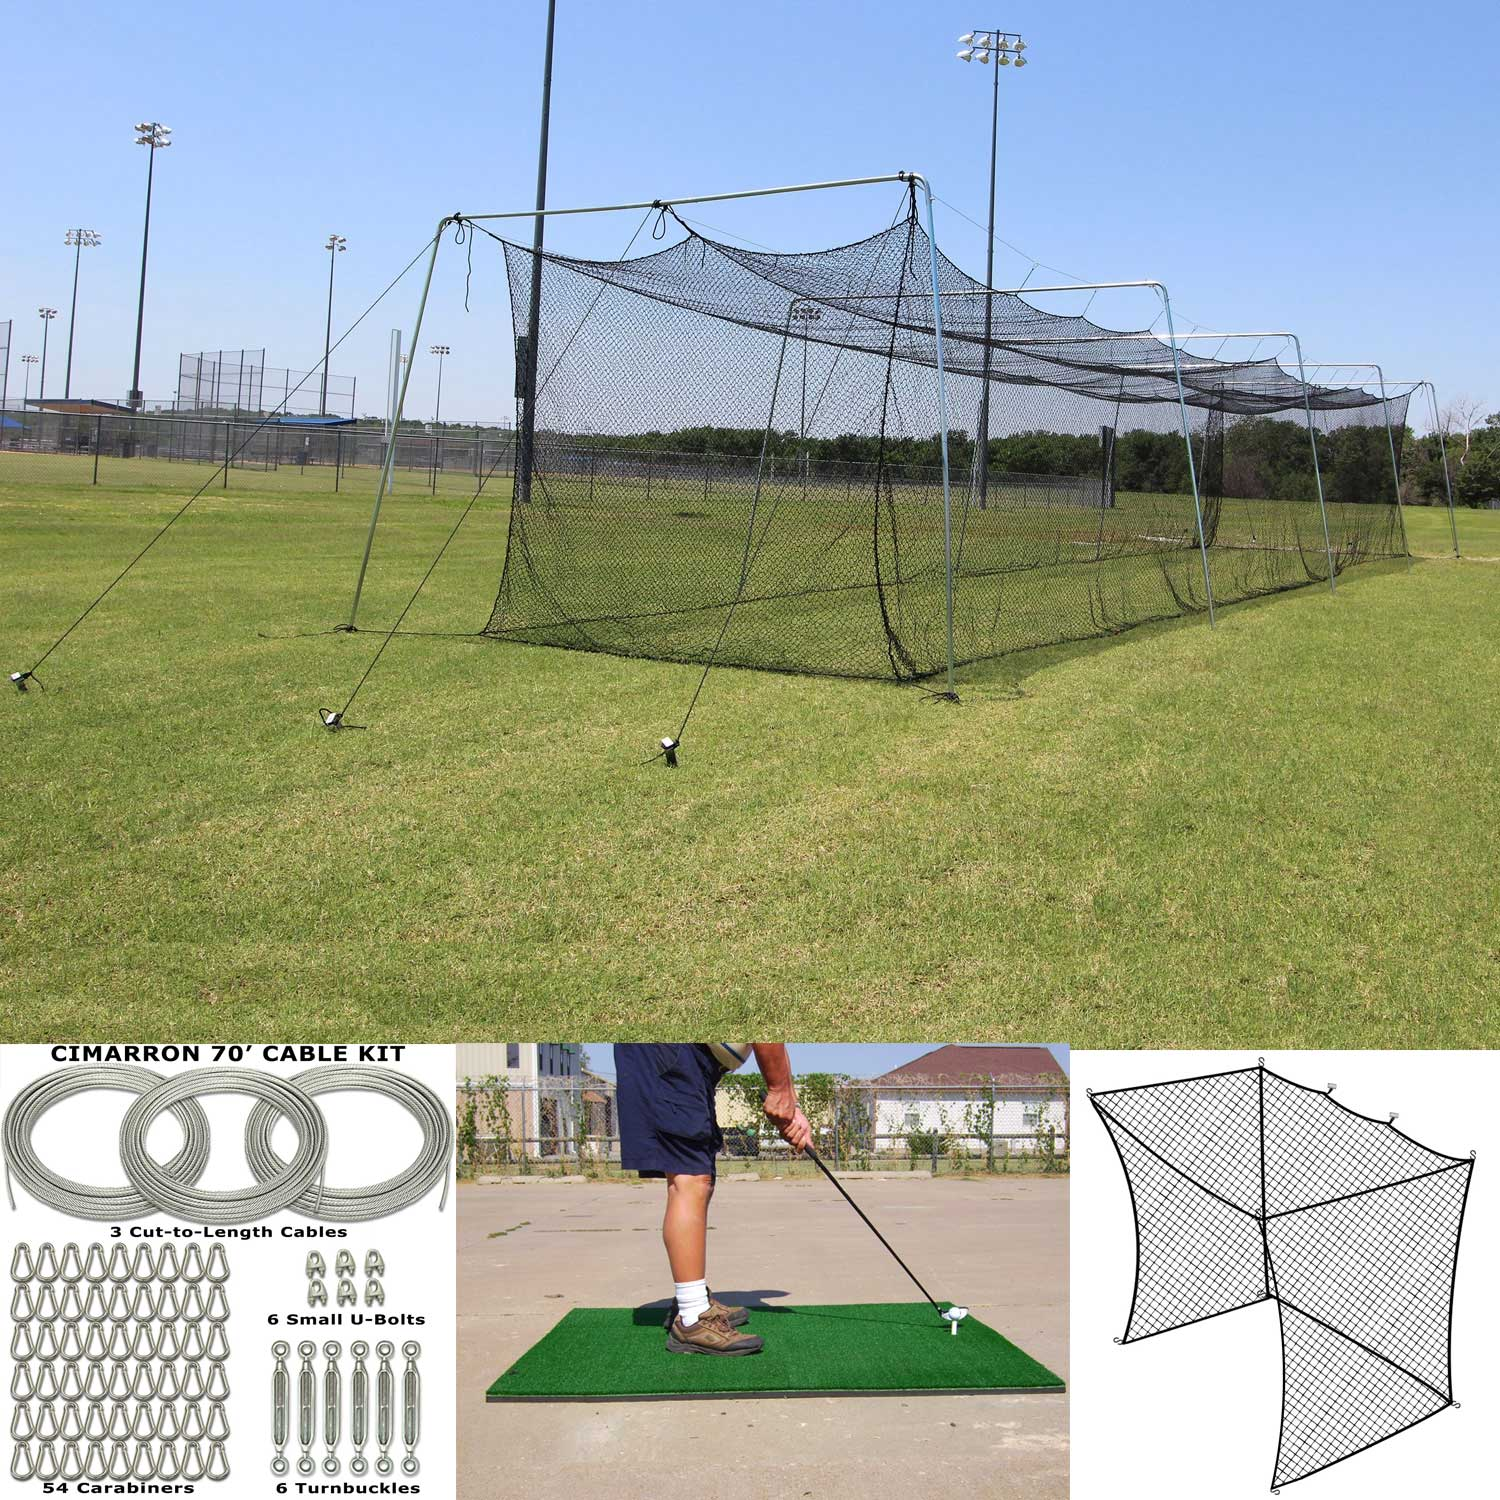 Packaging or Promotional image for 70x14x12 Batting Cage, Cable Kit, Golf Net Insert, Golf Mat